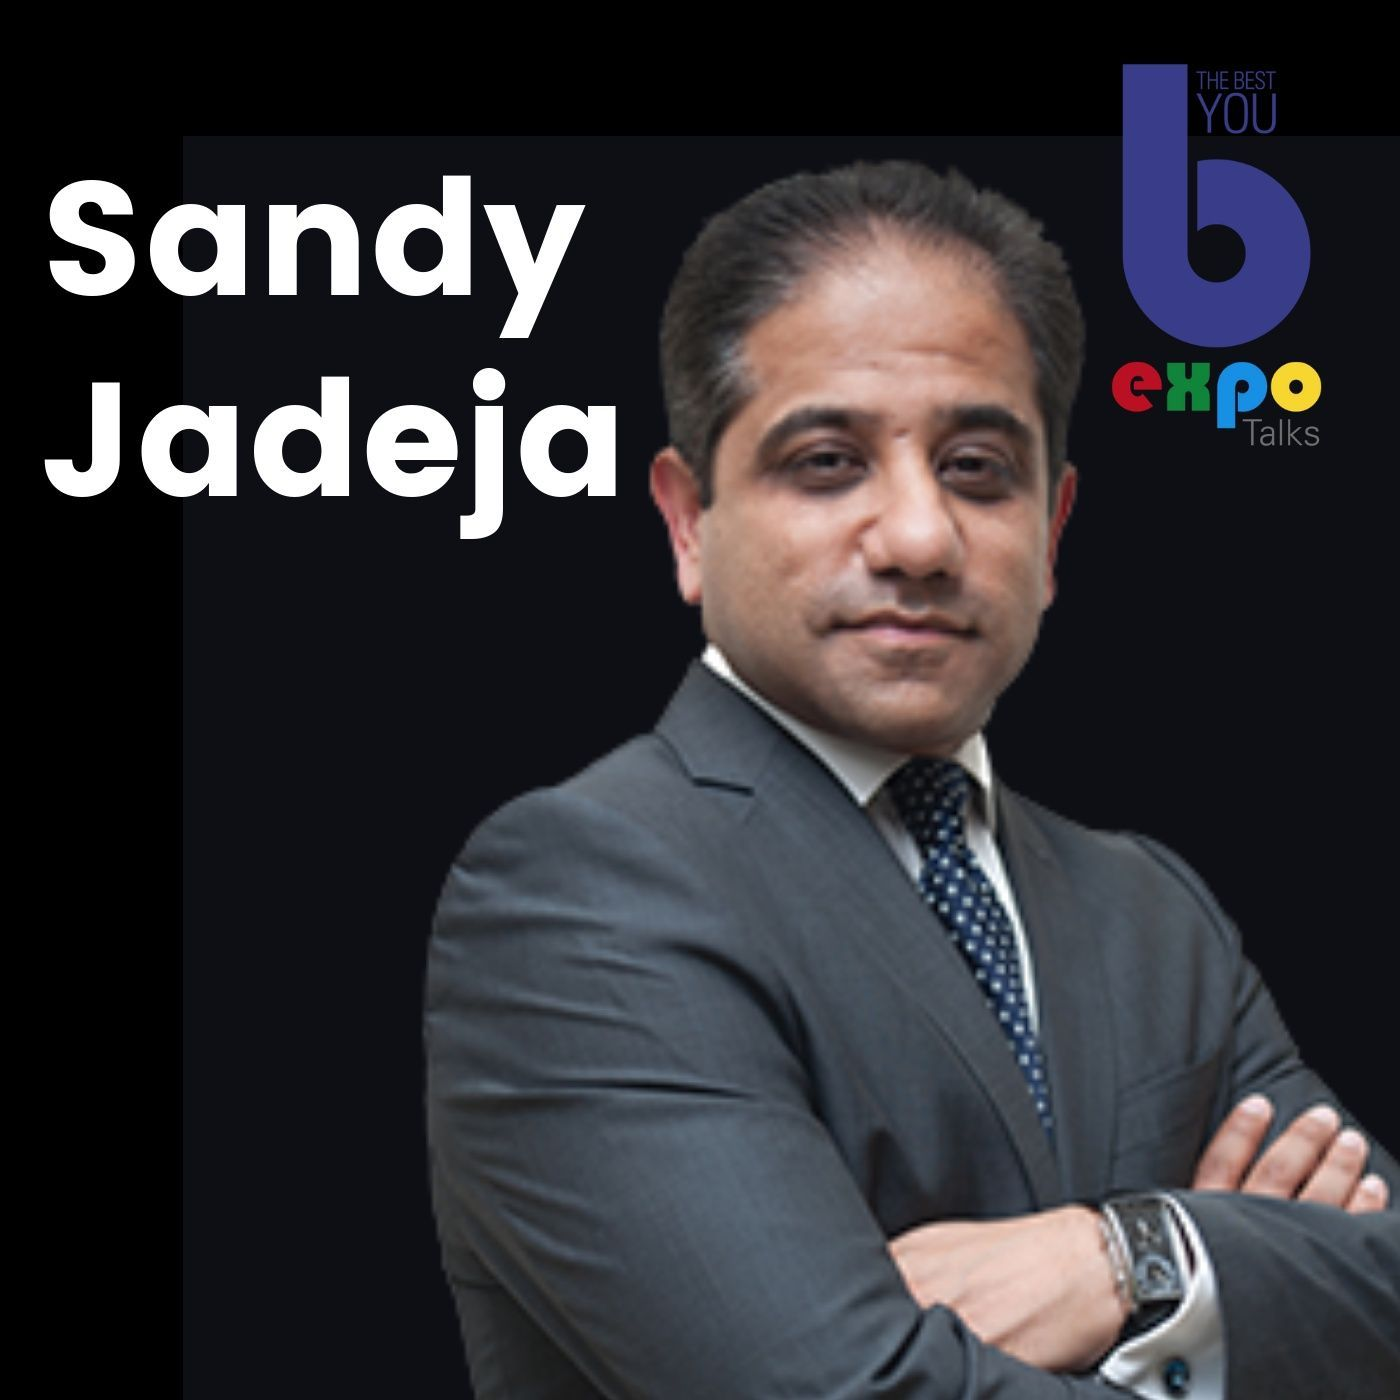 Listen to Sandy Jadeja at The Best You EXPO